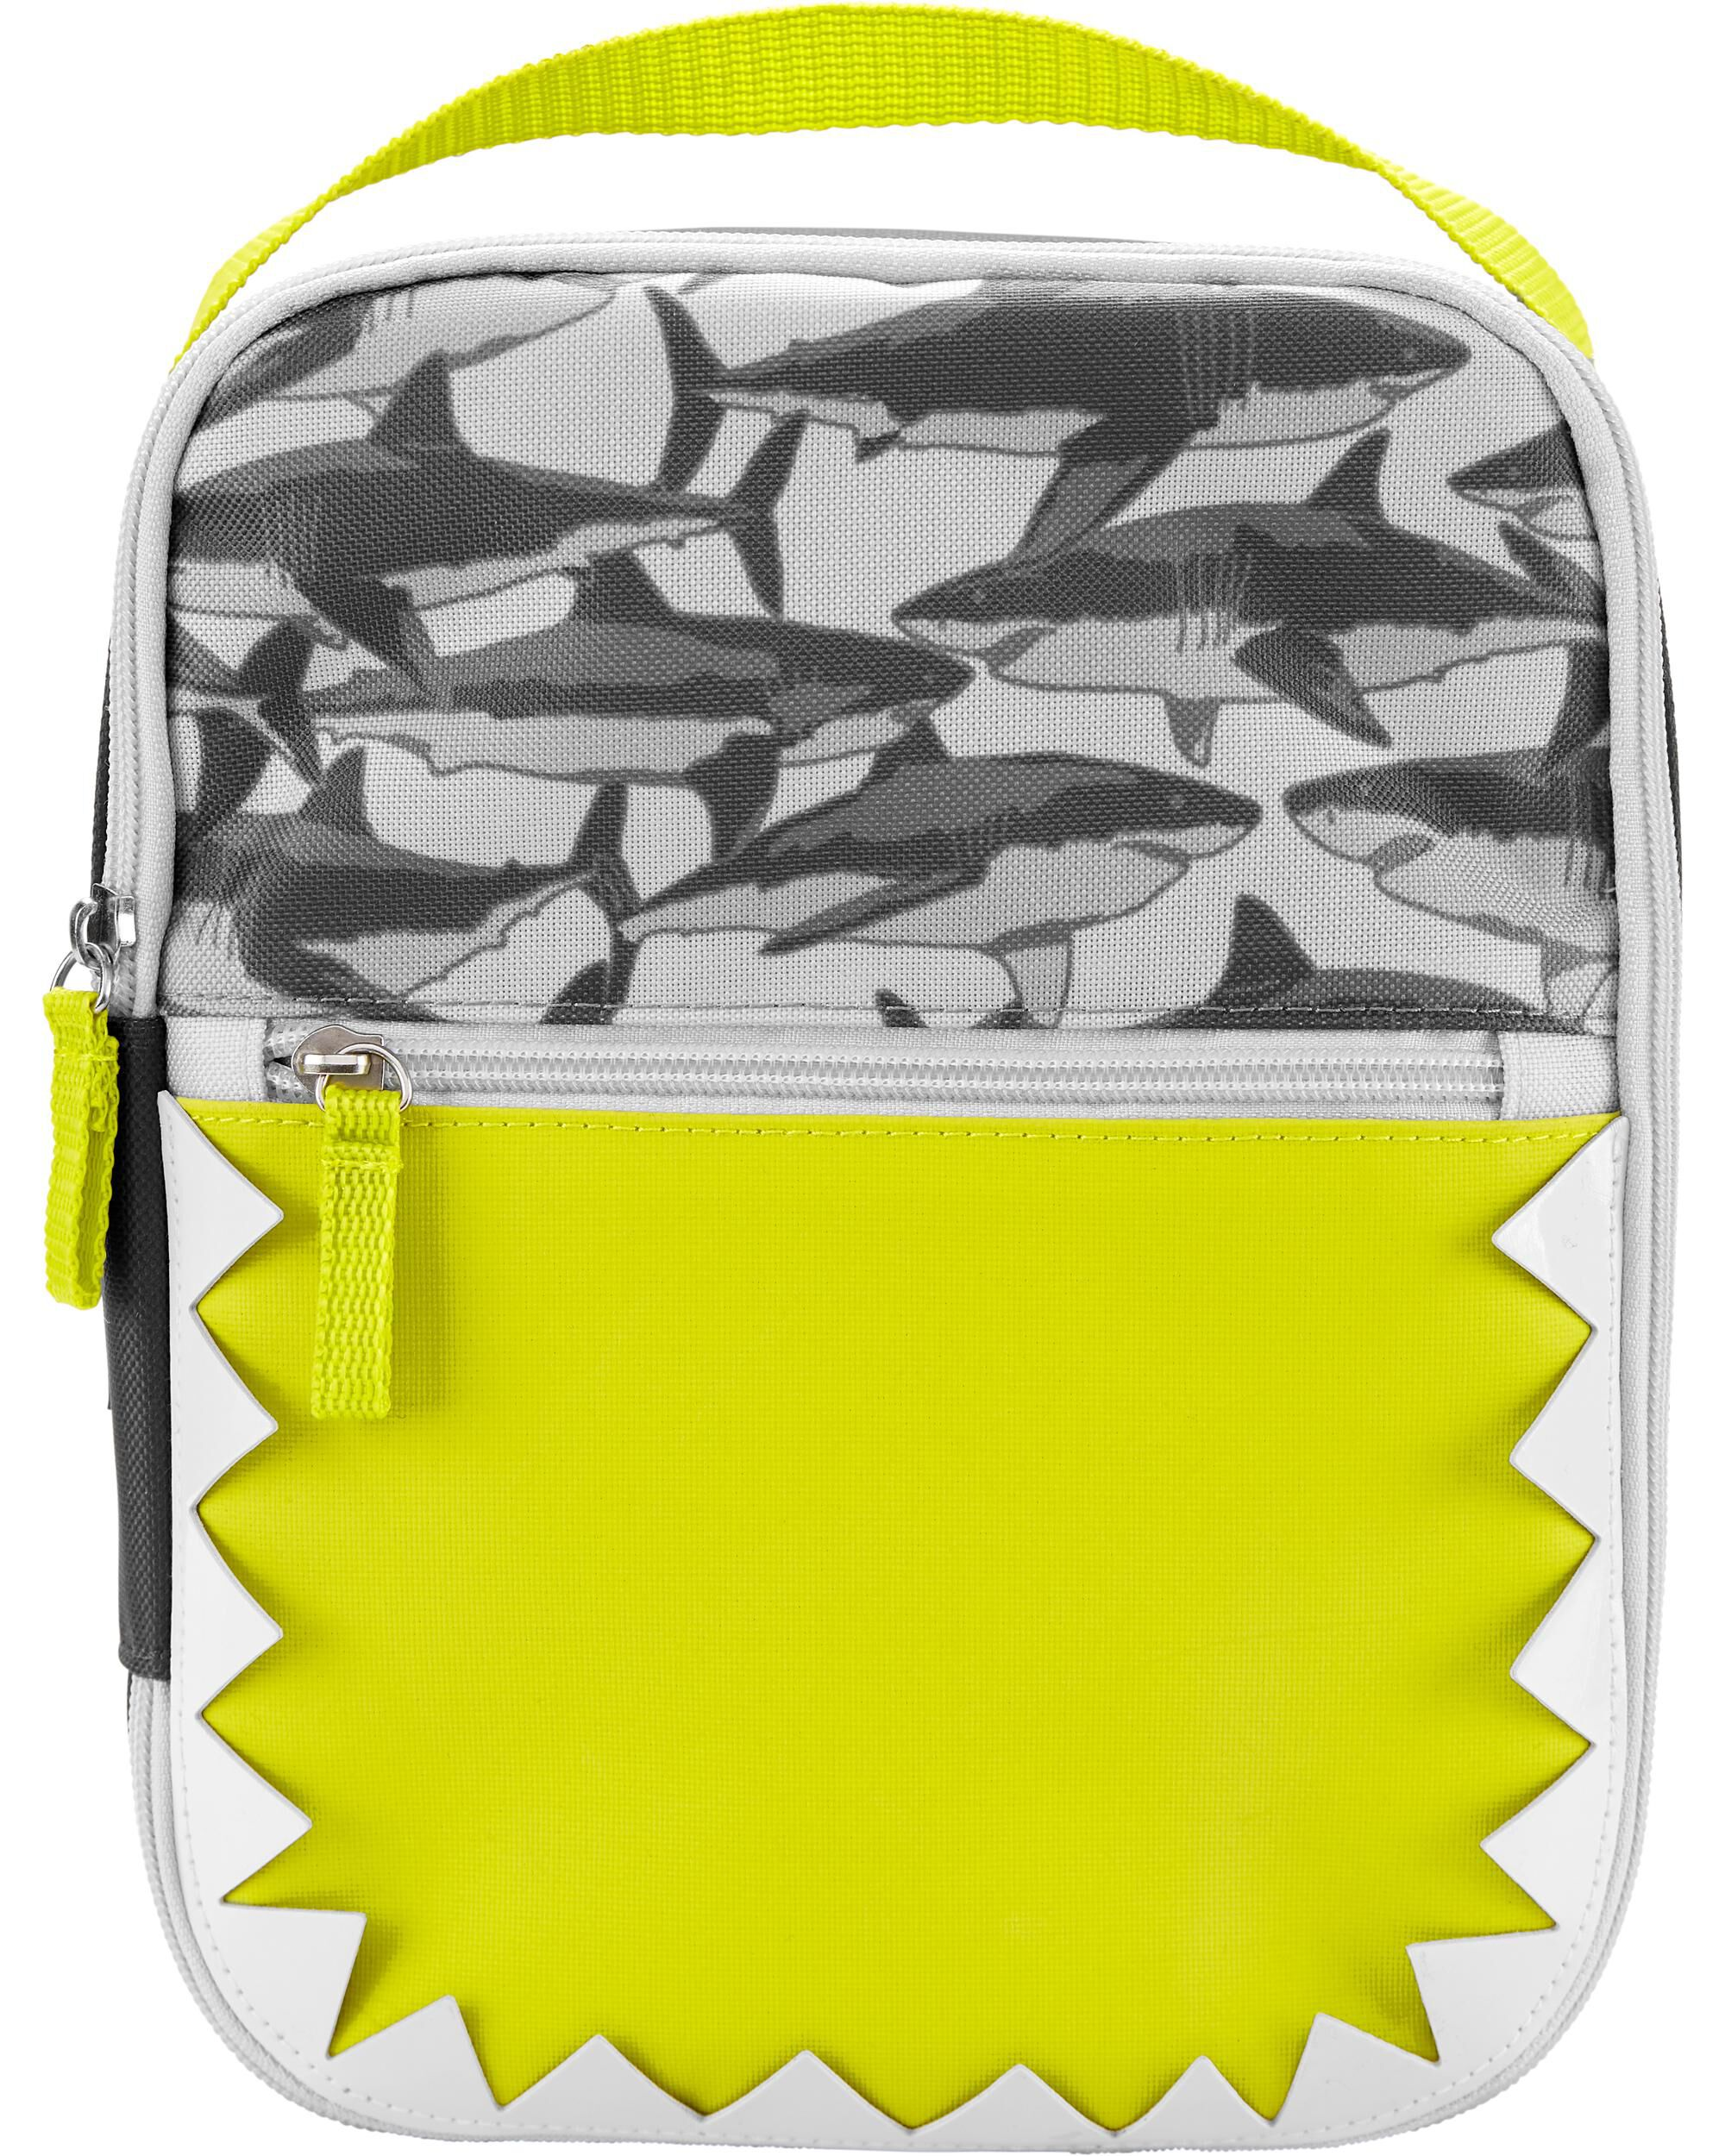 Oshkoshbgosh Shark Teeth Lunch Box